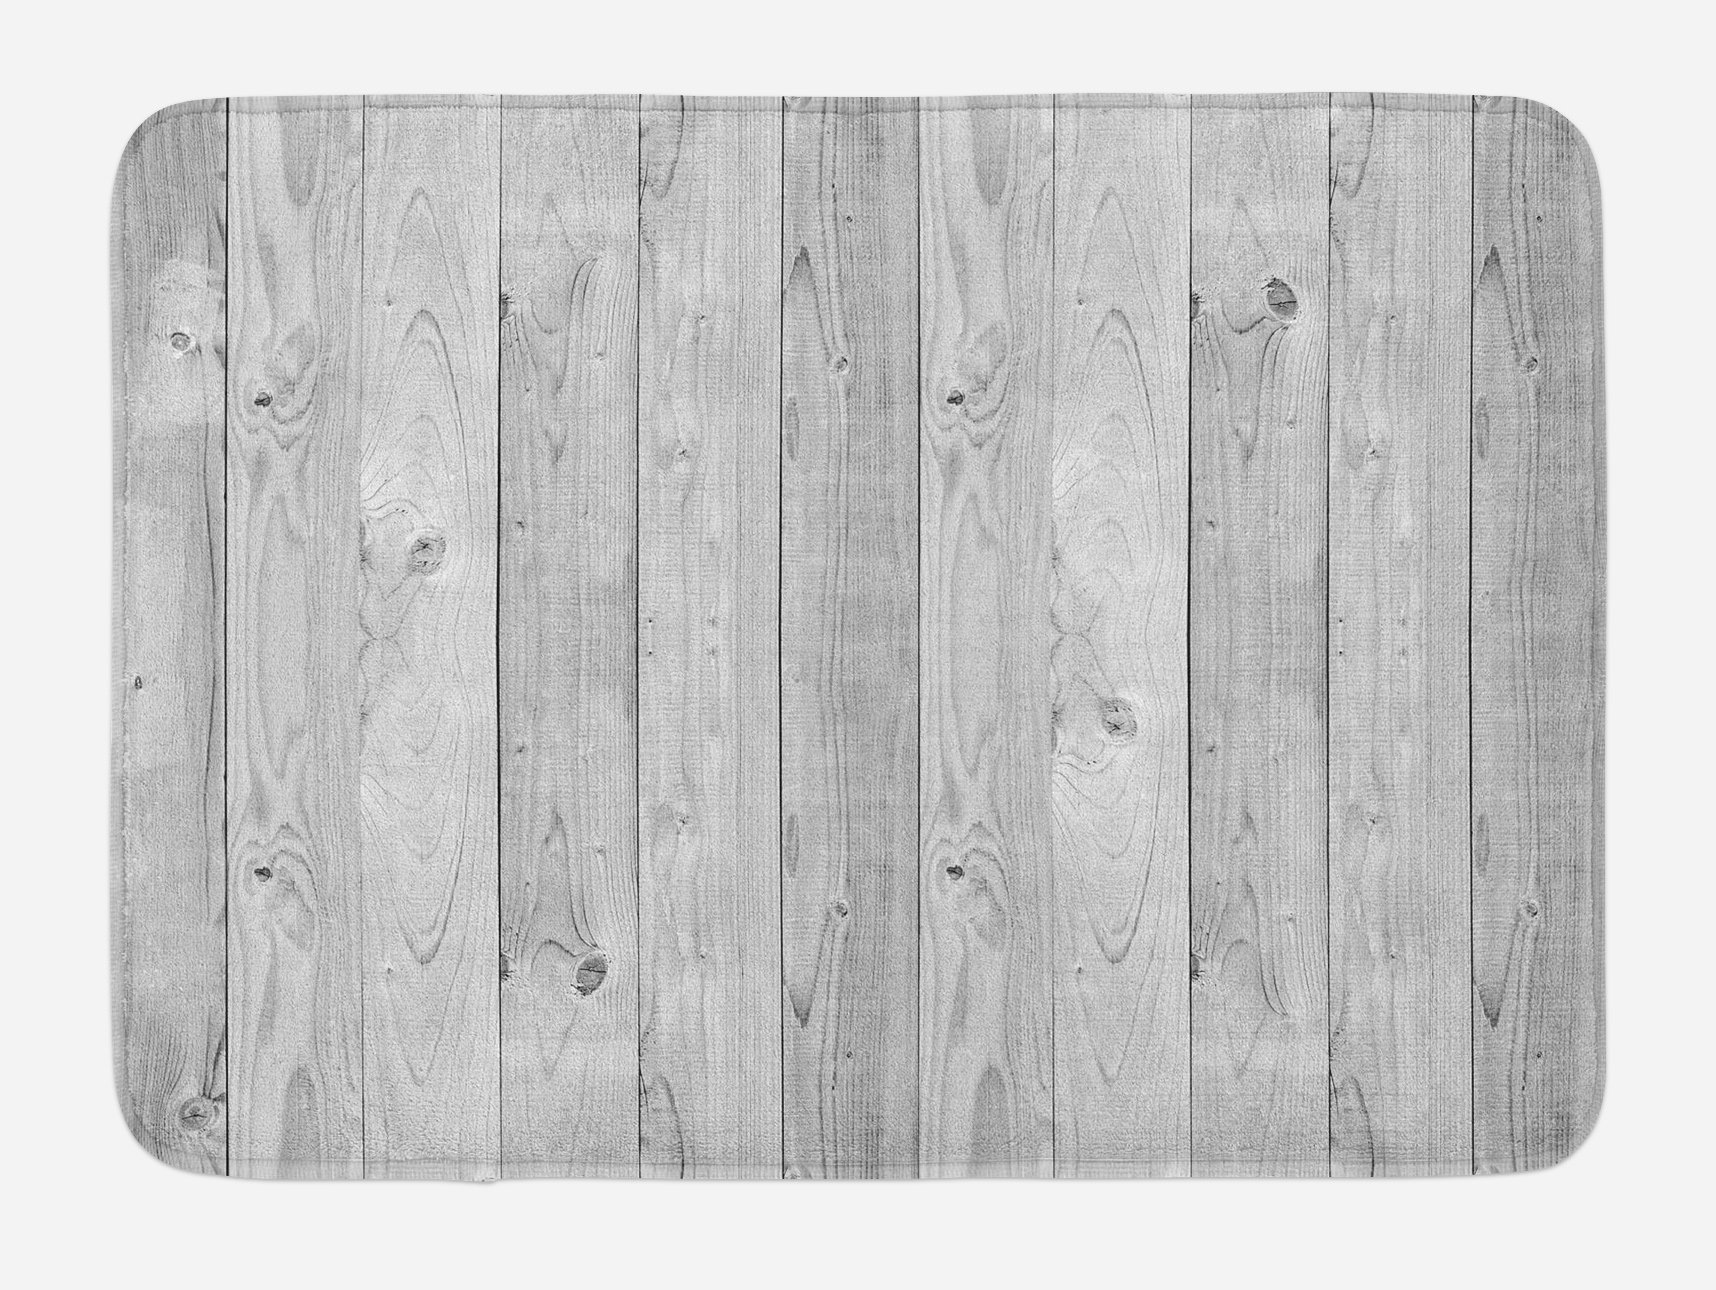 Lunarable Grey Bath Mat, Picture of Smooth Oak Wood Texture in Old Fashion Retro Style Horizontal Nature Design Home, Plush Bathroom Decor Mat with Non Slip Backing, 29.5 W X 17.5 W Inches, Gray